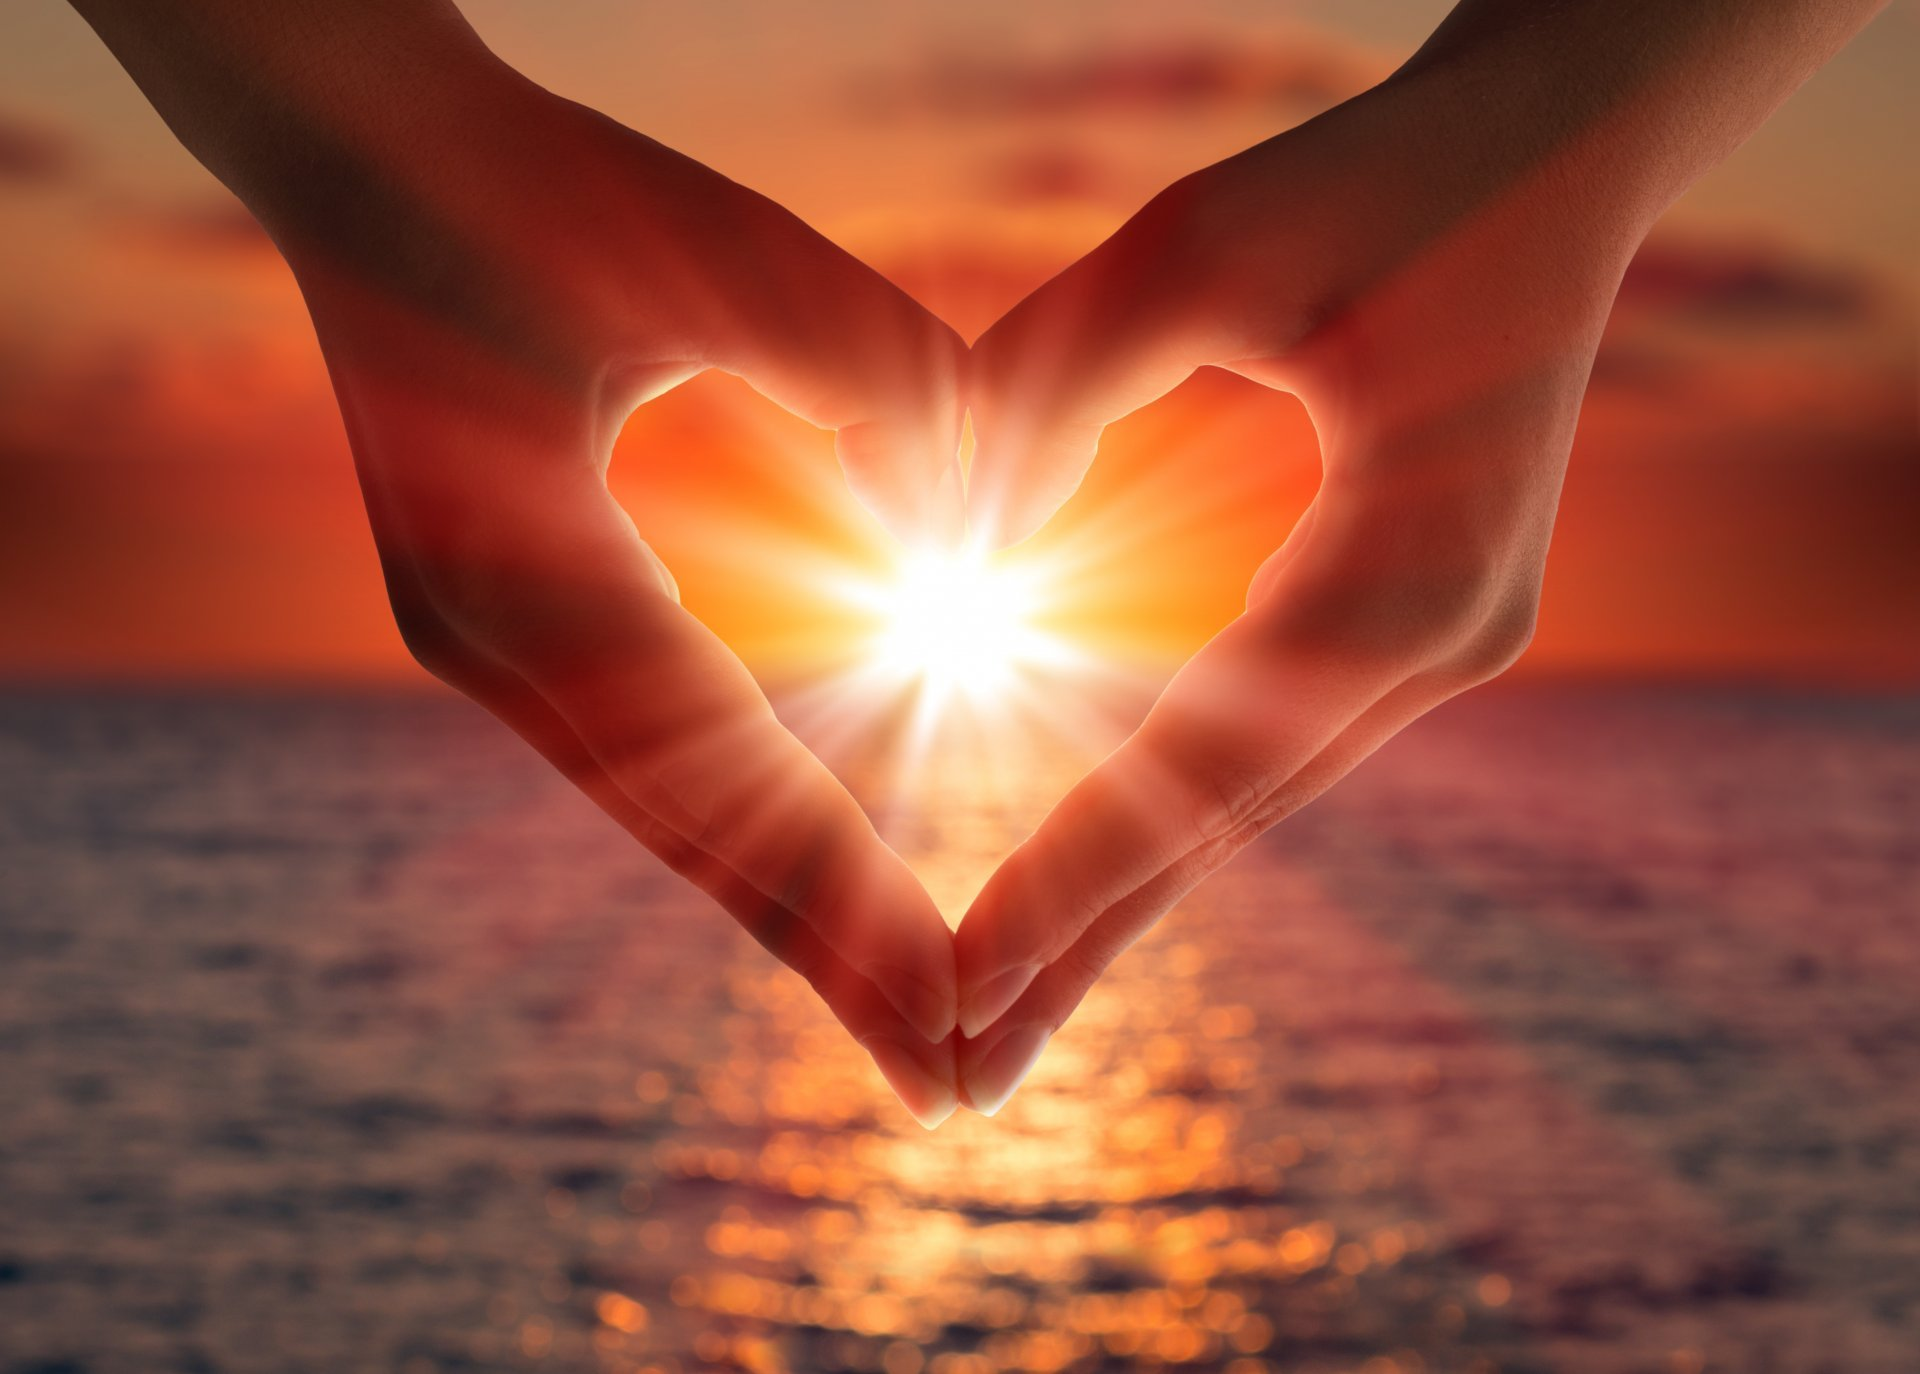 sunset-sea-romantic-hands-heart-love-light-sunset-sea-hands-love-heart-light-lights